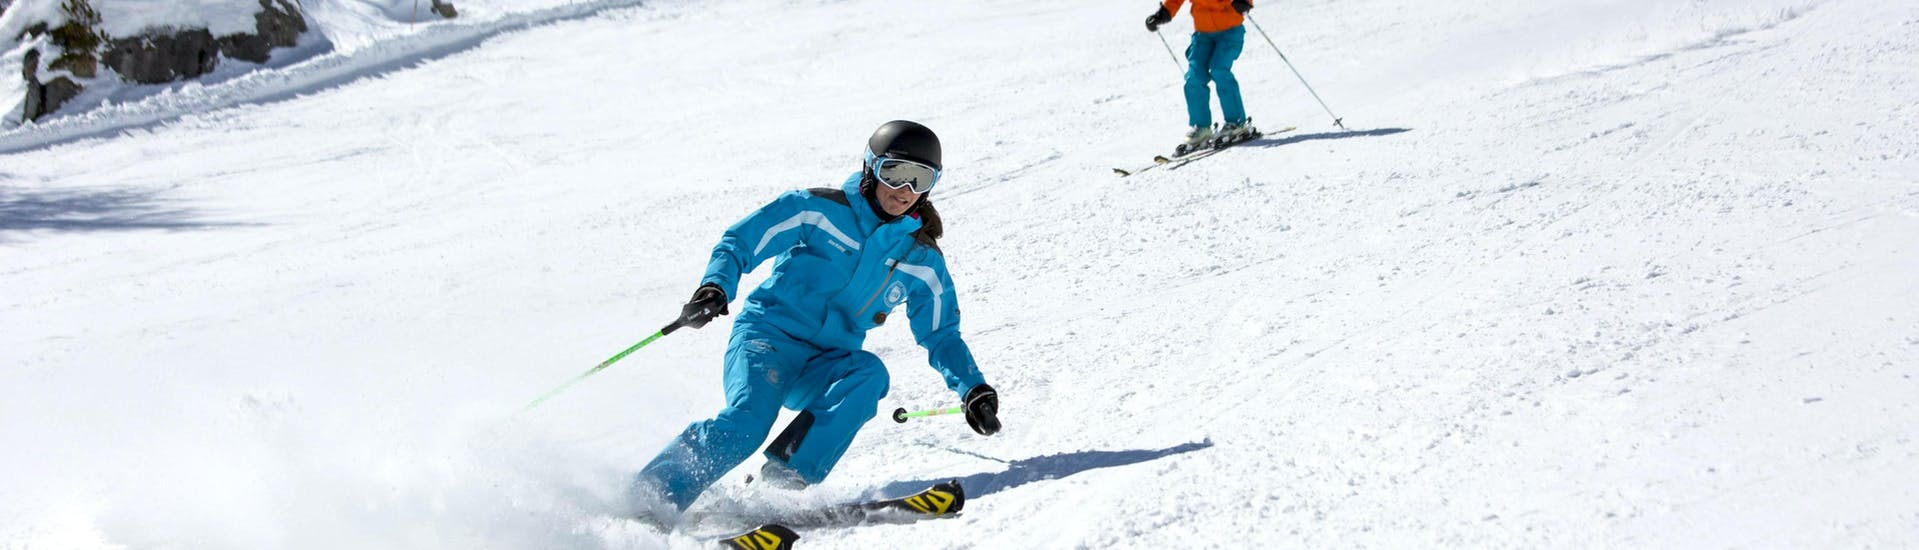 A skier is skiing down a snowy slope behind their ski instructor from the ski school ESI Font Romeu during their Private Ski Lessons for Adults - Low Season - All Levels.